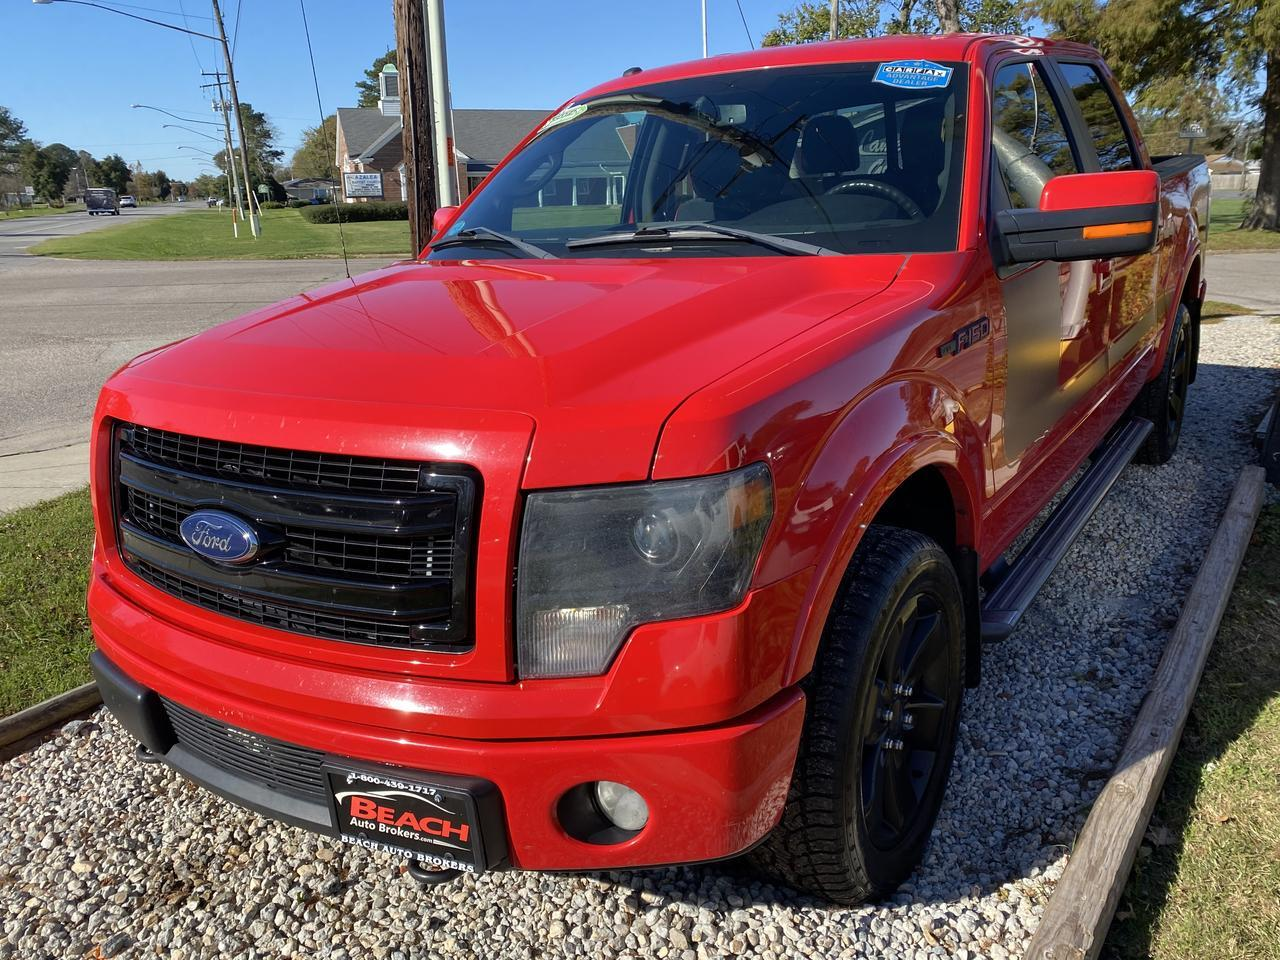 2013 FORD F-150 FX4 SUPERCREW 4X4, WARRANTY, LEATHER, NAV, BLUETOOTH, AUX/USB PORT, CLEAN CARFAX! Norfolk VA